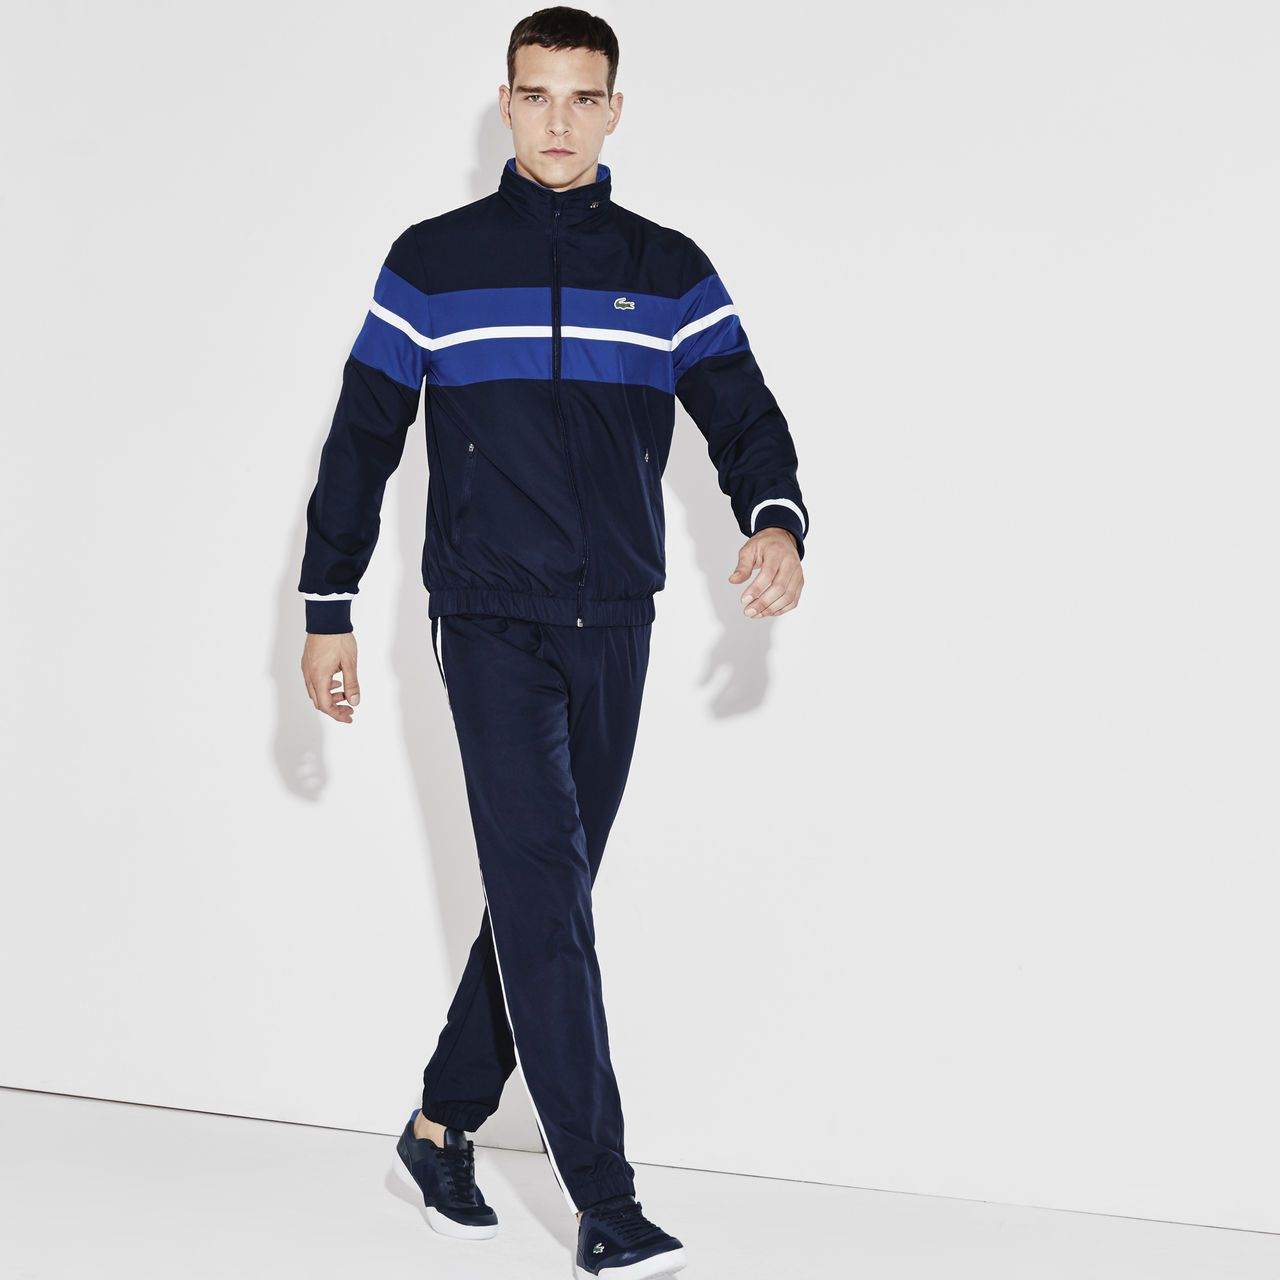 617fb3b4d Tennis Lacoste SPORT tracksuit in color block print taffeta